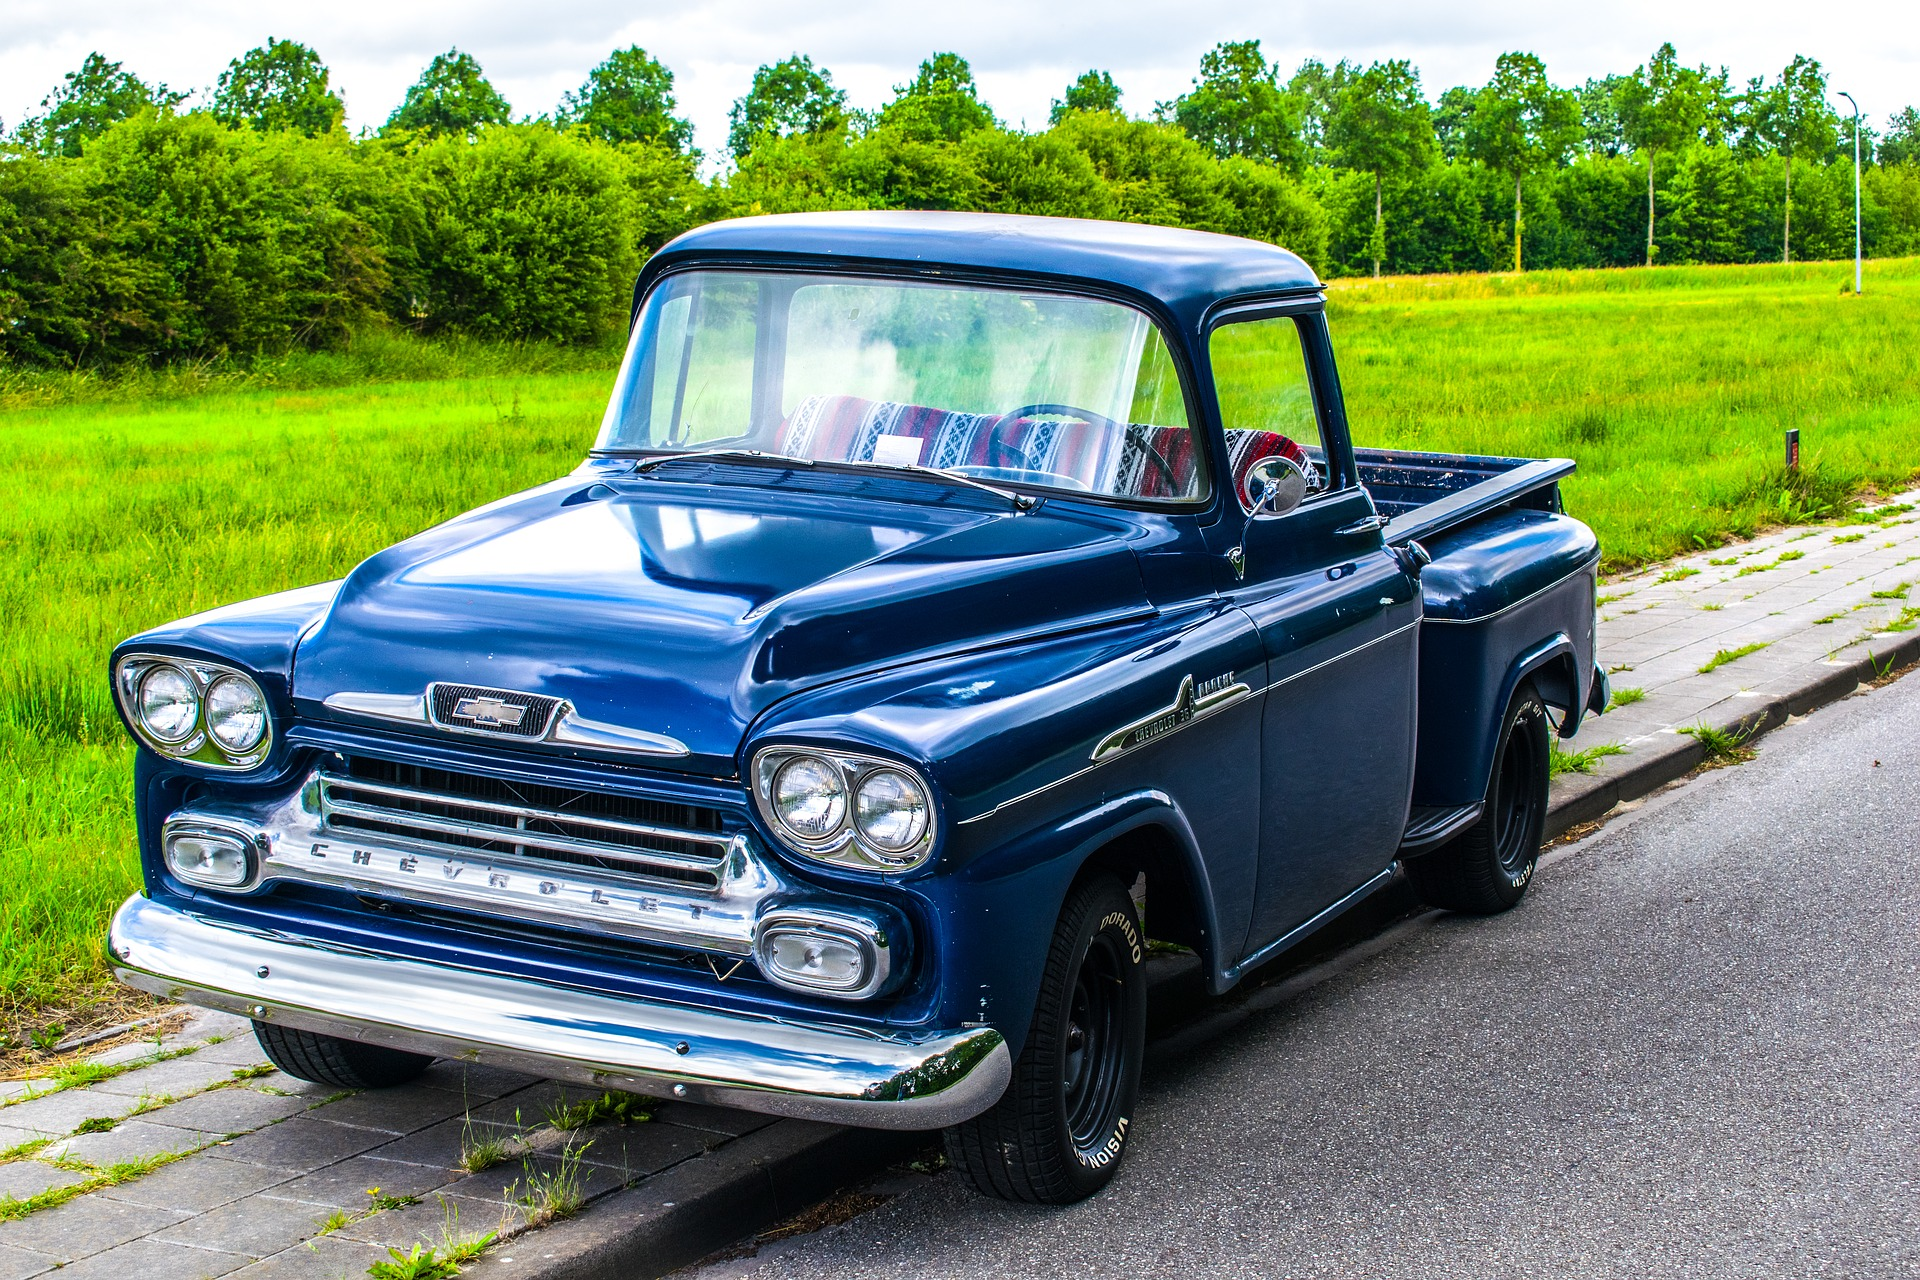 blue chevrolet park on a road side